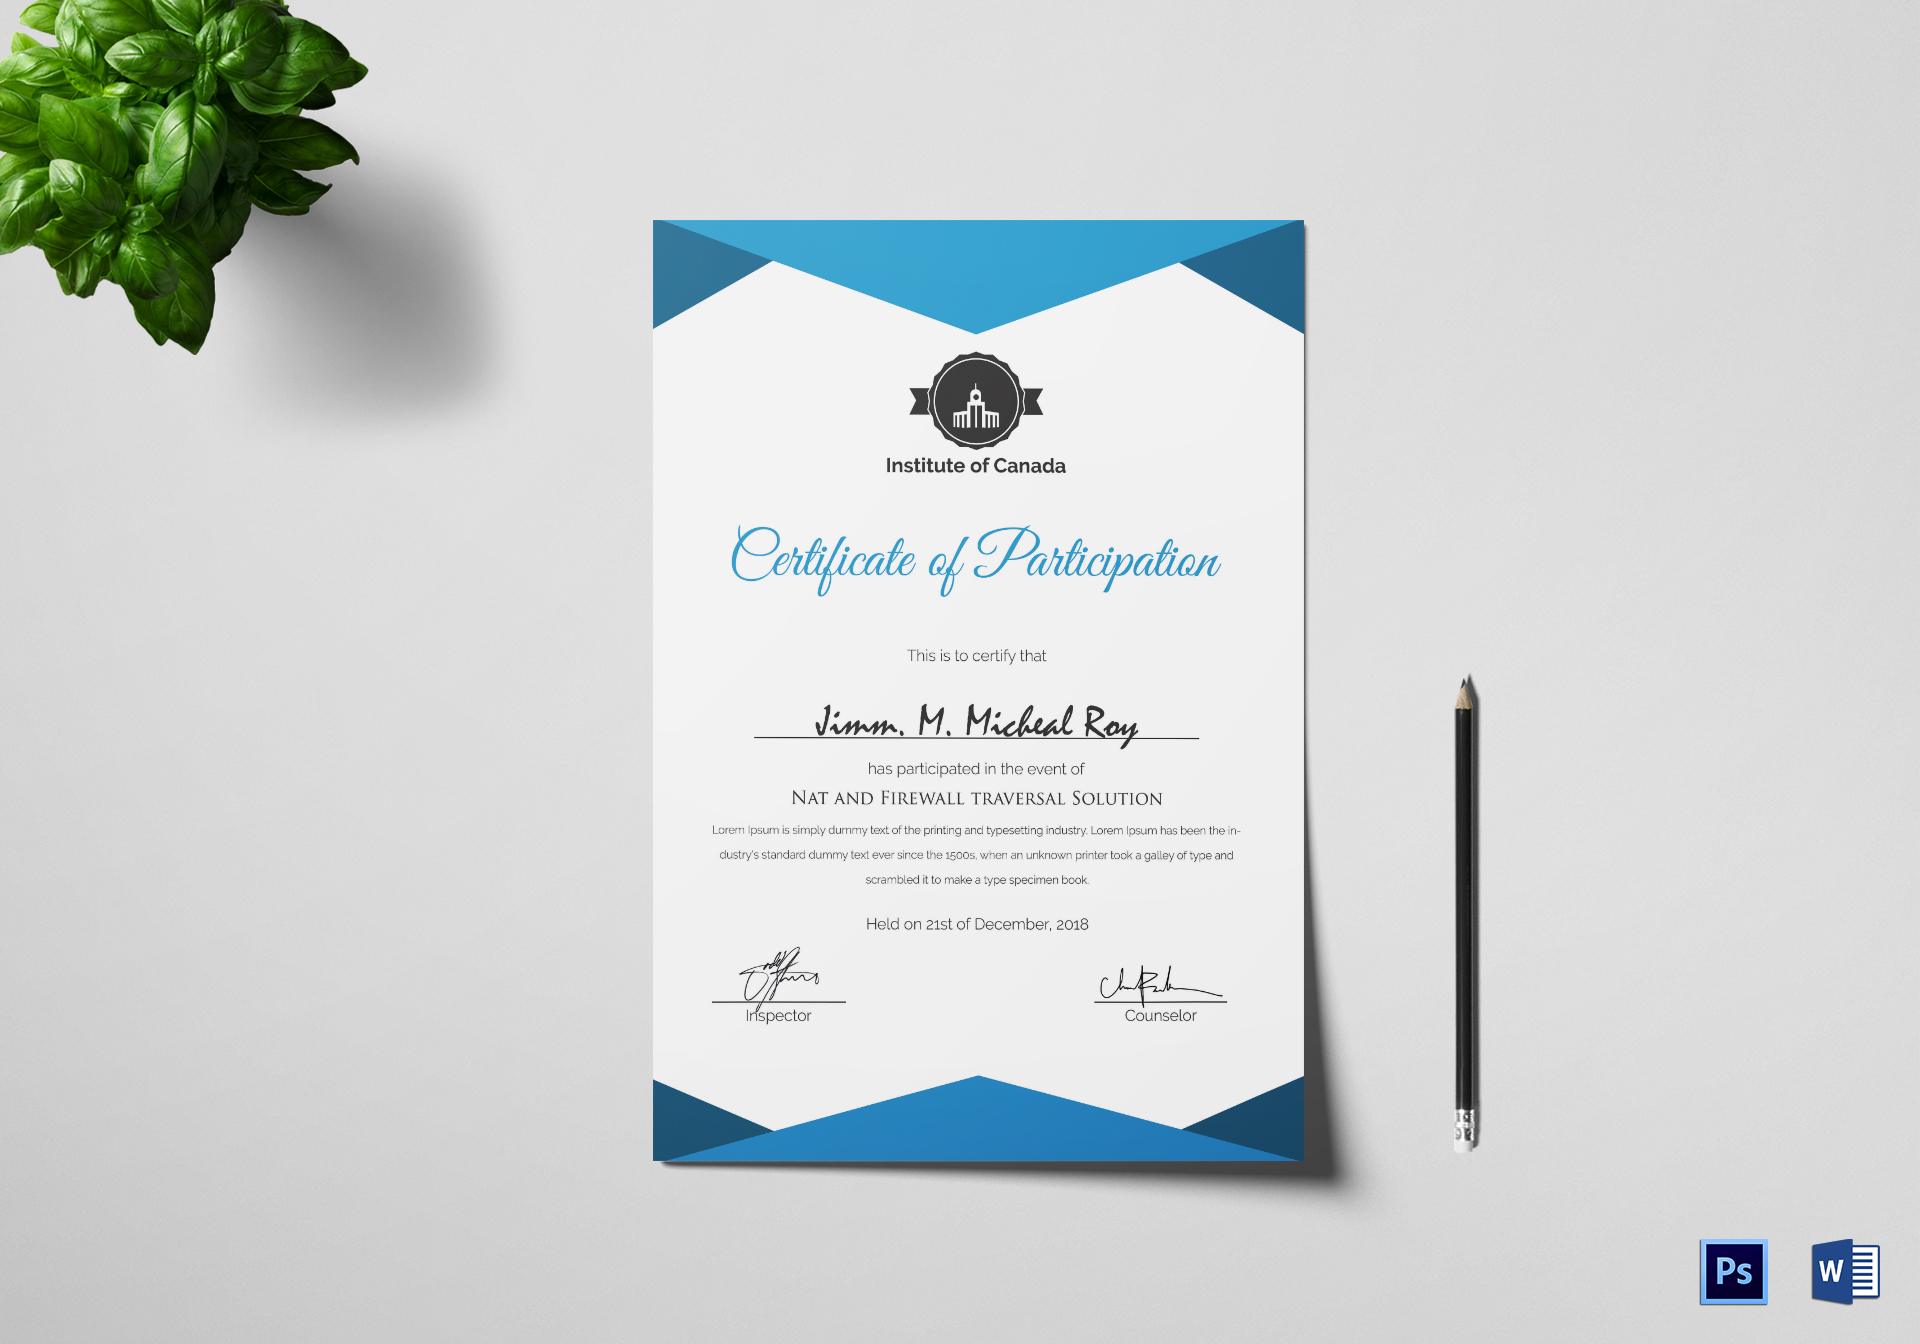 Sample Certificate of Participation